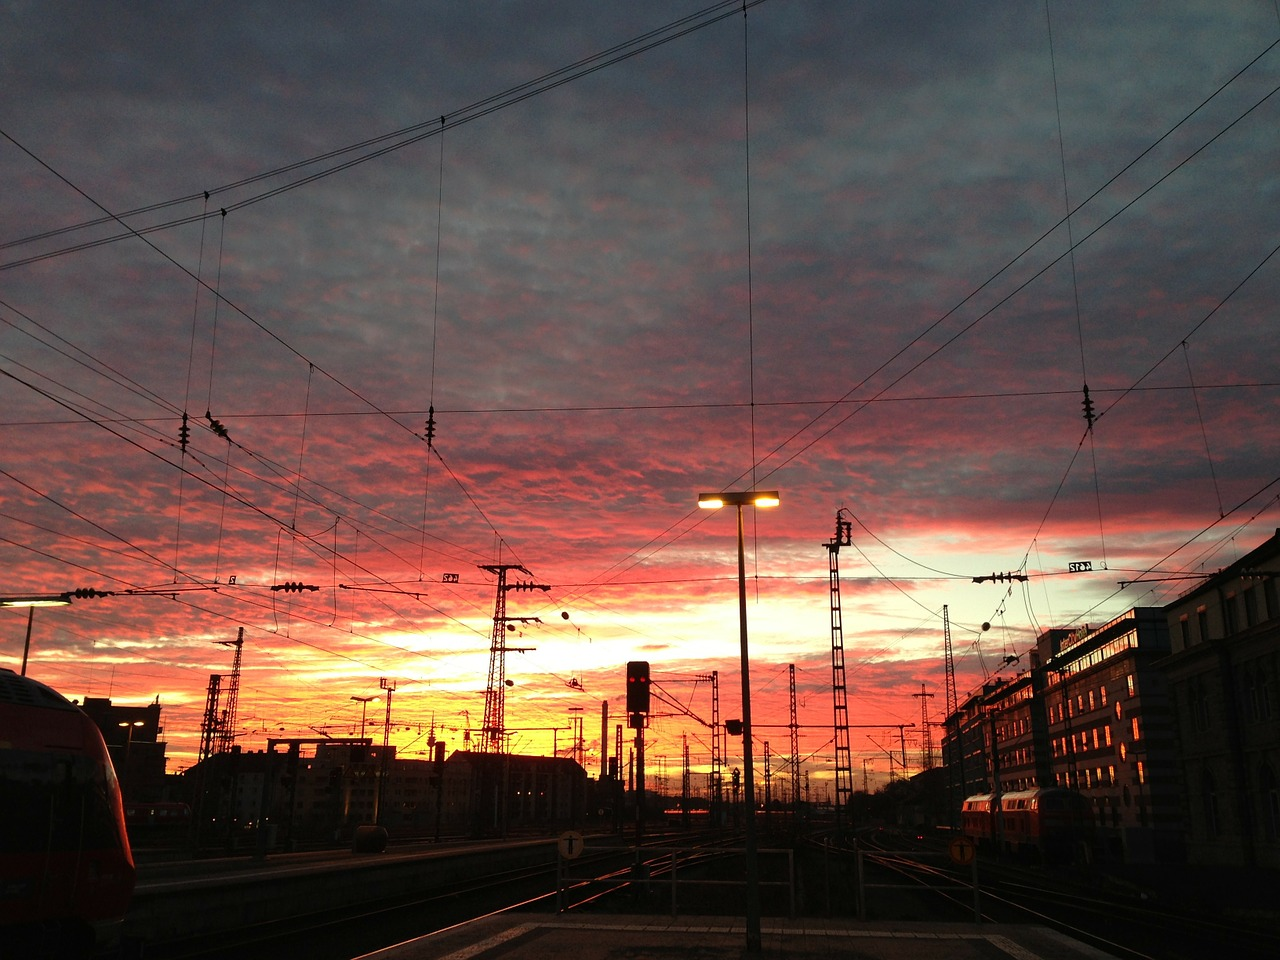 sunset clouds railway station free photo